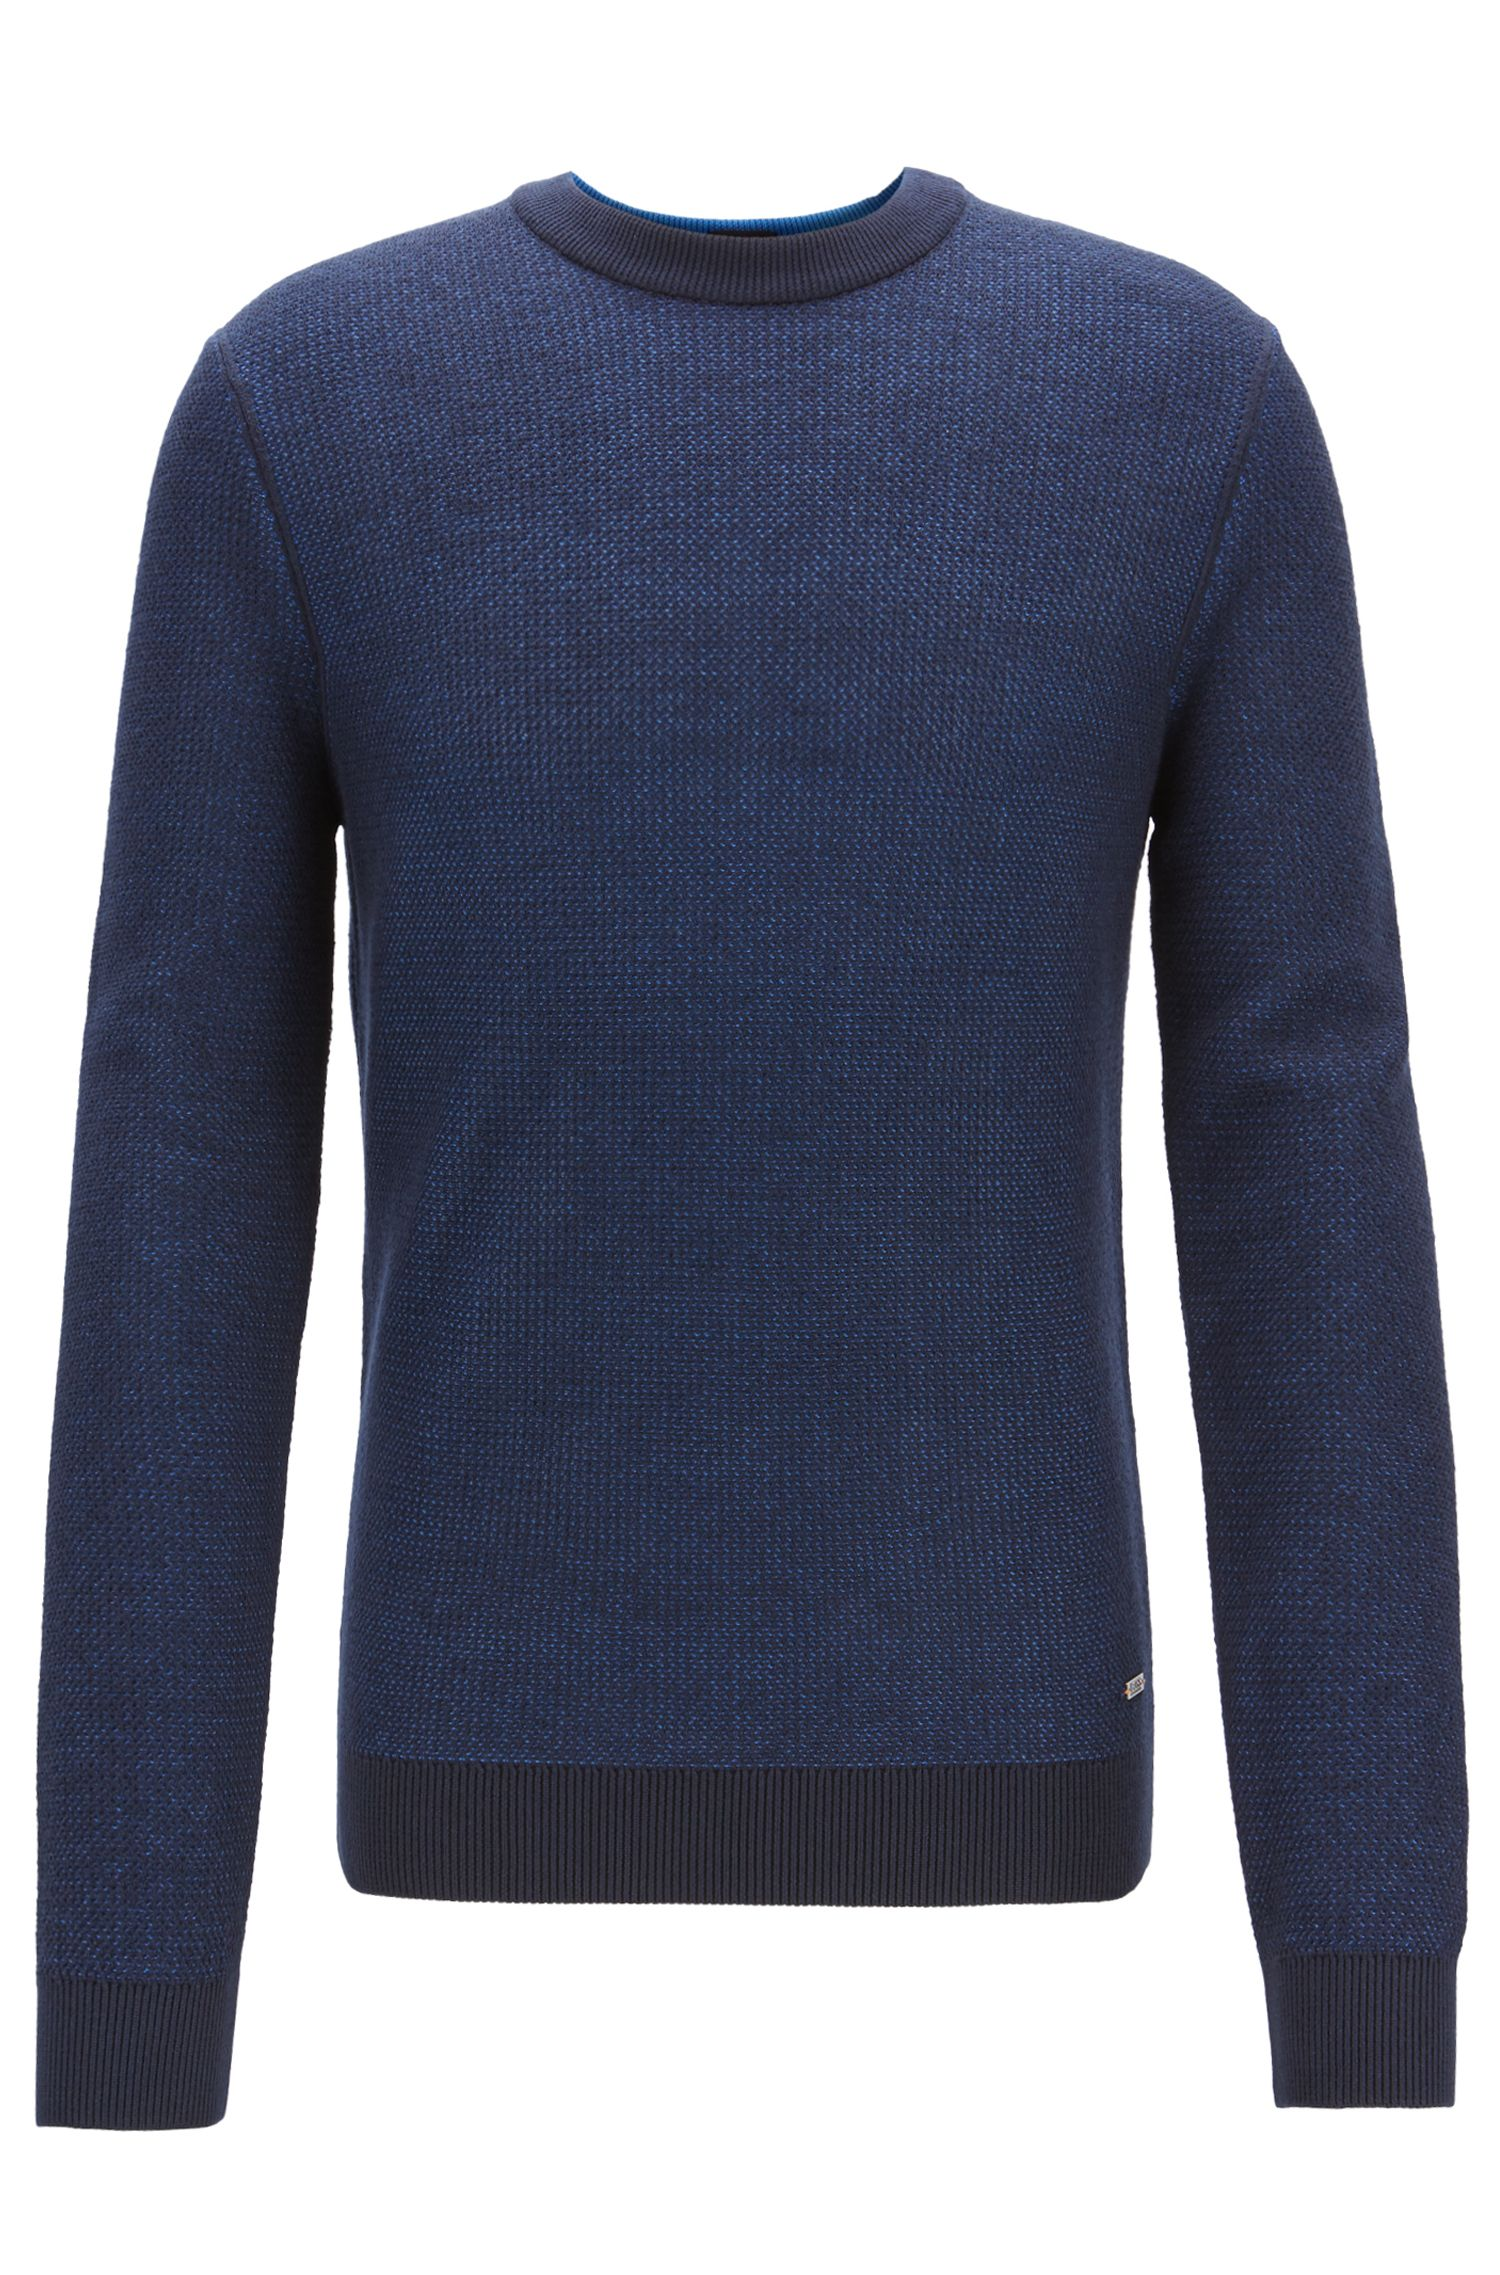 Crew-neck sweater in micro-structured Italian cotton, Dark Blue